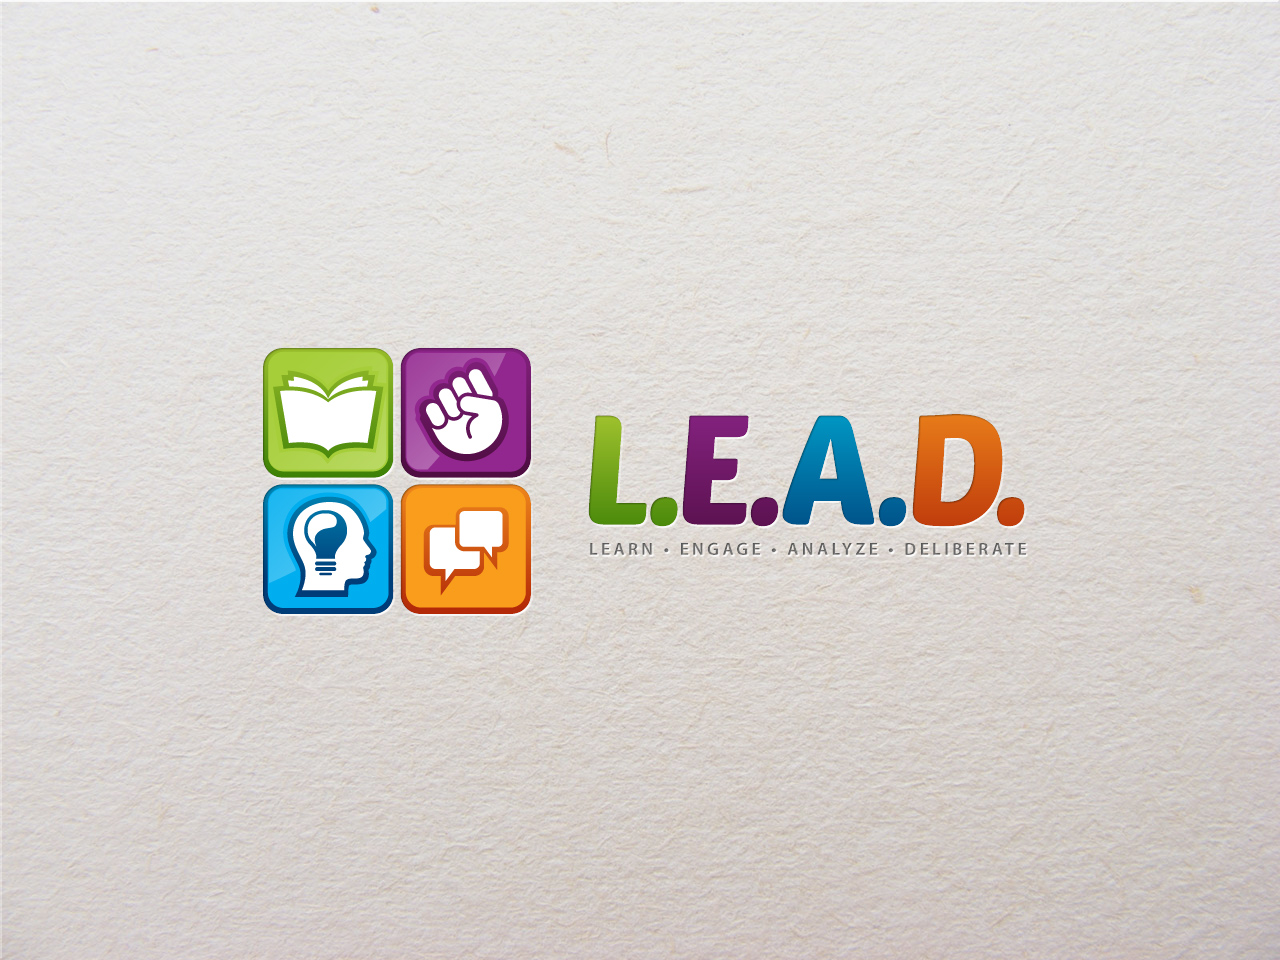 Logo Design by jpbituin - Entry No. 3 in the Logo Design Contest L.E.A.D. (learn, engage, analyze, deliberate) Logo Design.